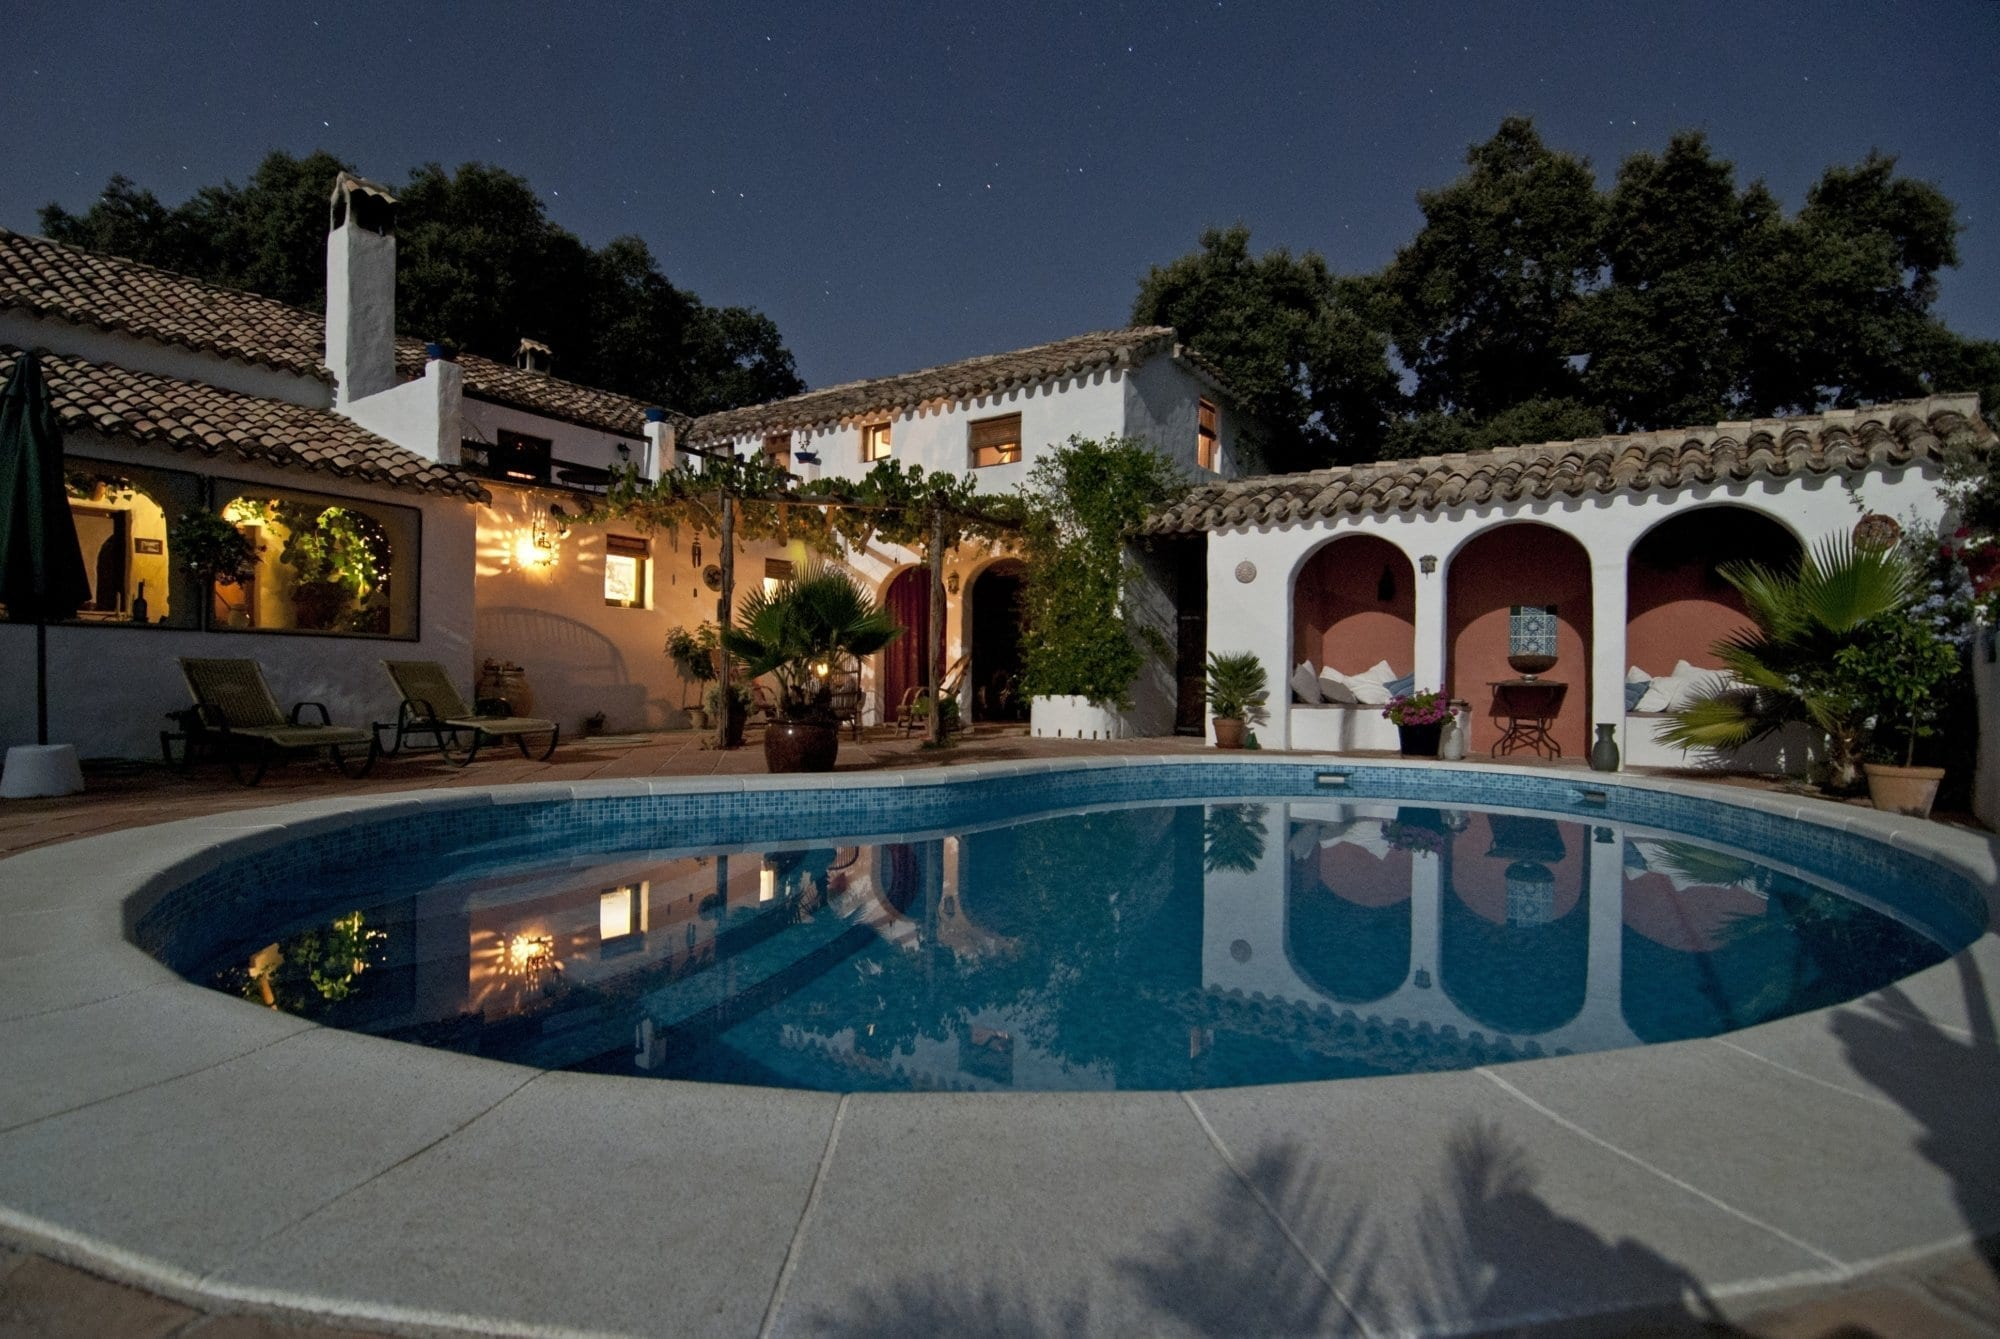 Residential exterior painted stucco with pool